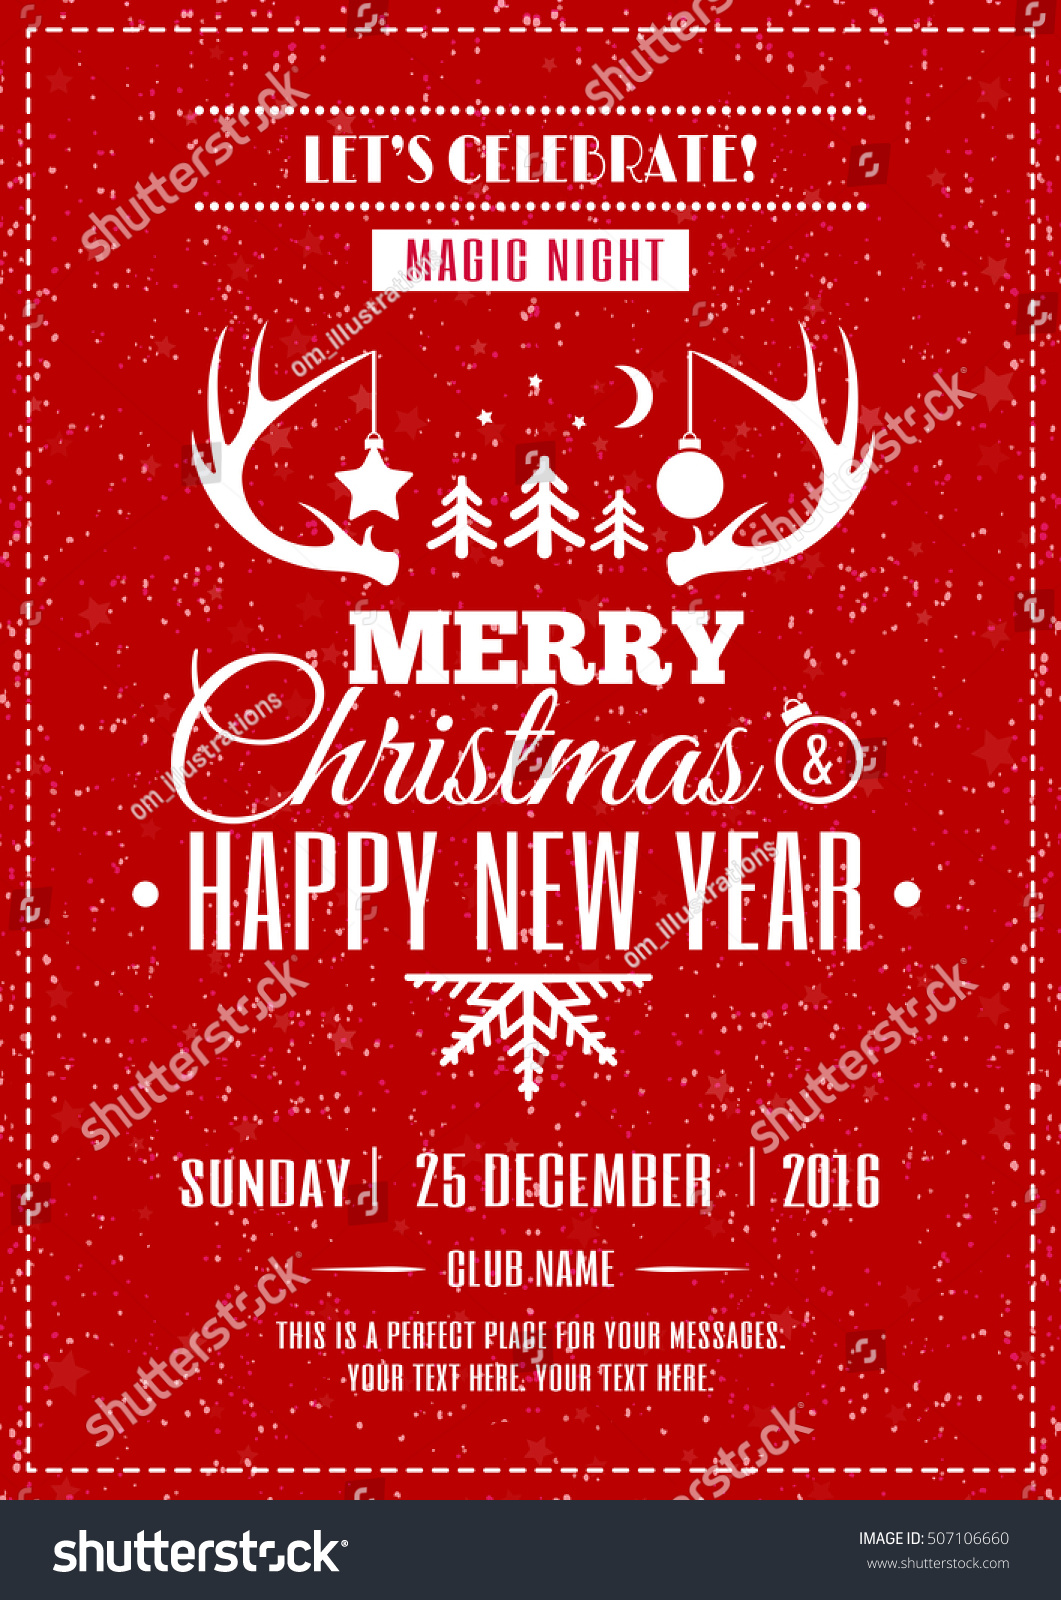 merry christmas poster wishes merry x mas stock vector (royalty free